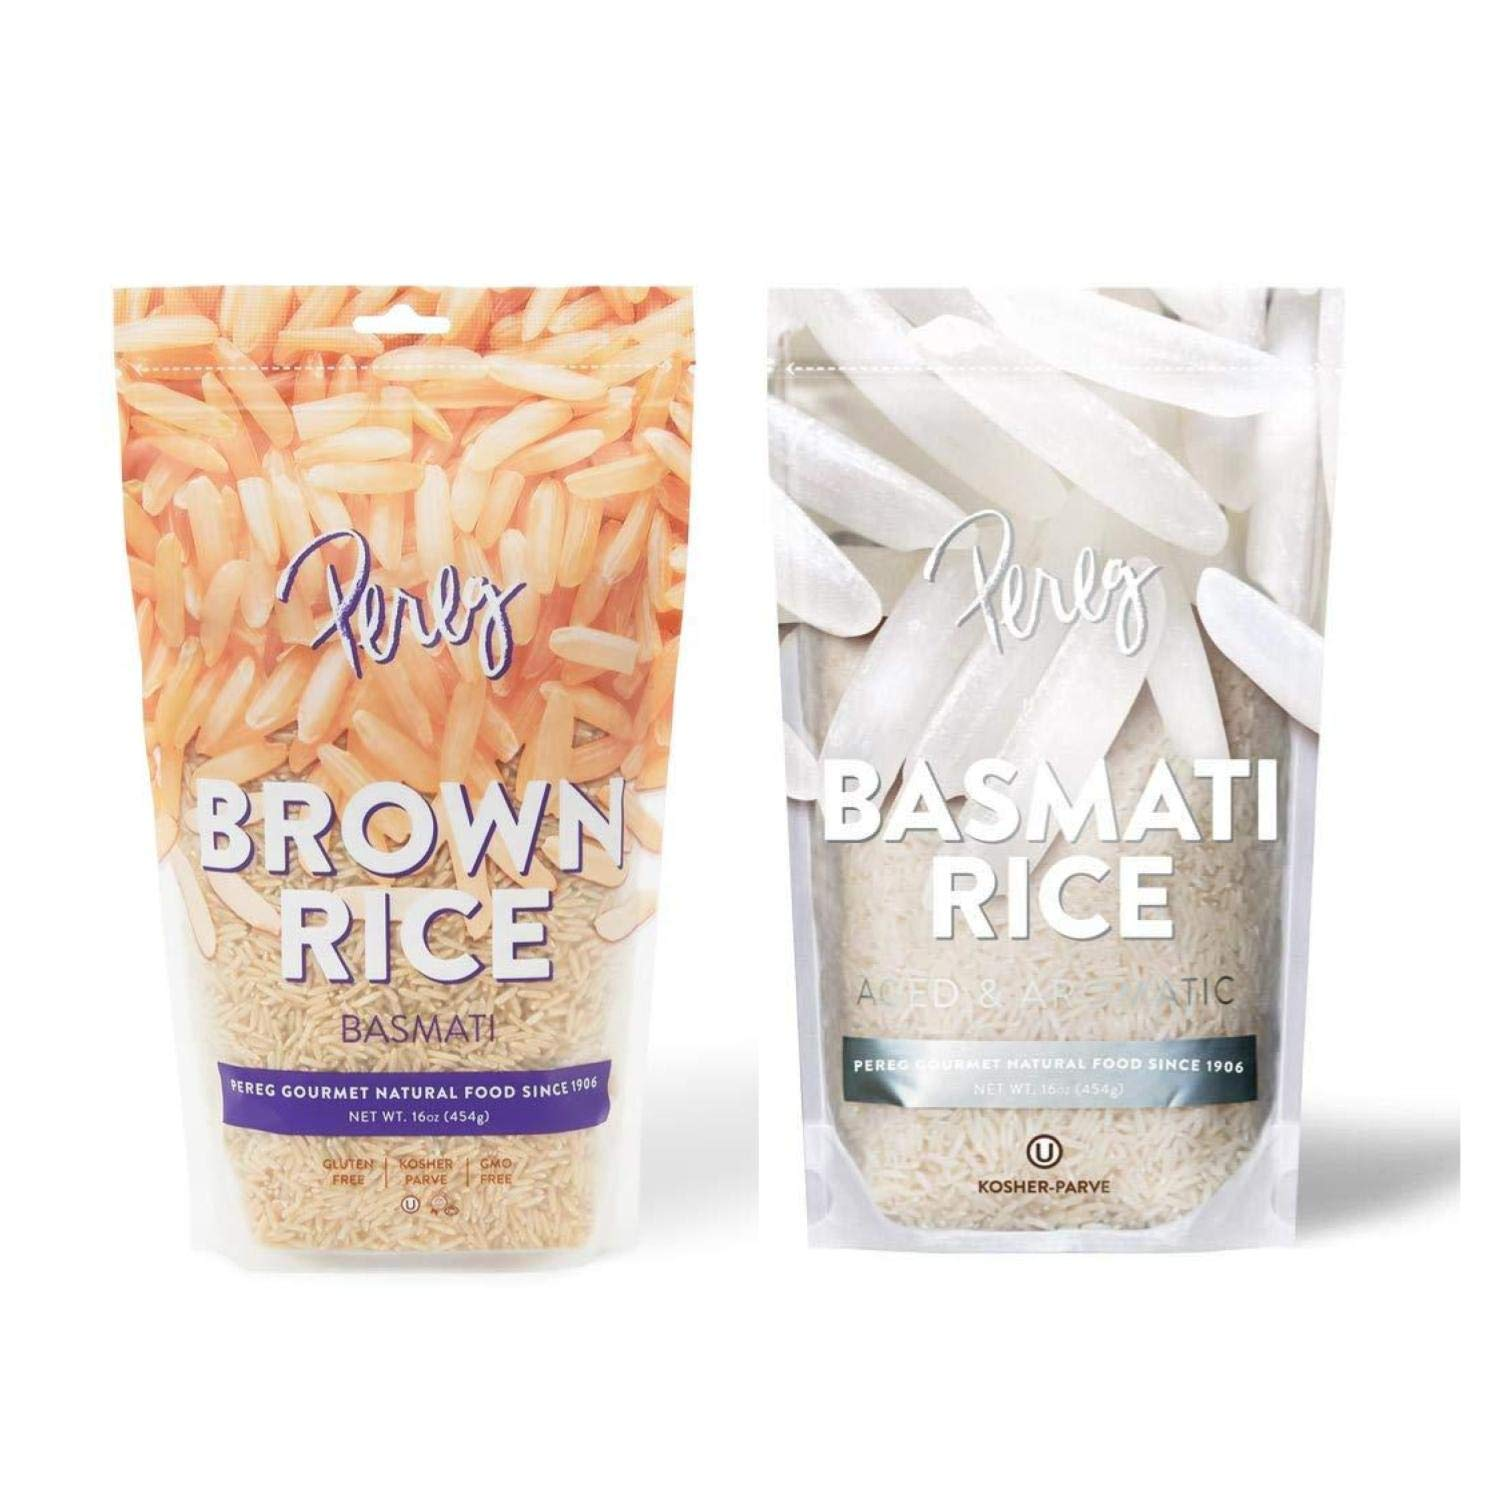 Pereg Brown Basmati Rice & White Basmati Rice (16oz + 16oz) - Extra Long, Naturally Aged & Aromatic Grail - Soft, Fluffy & Cooks Quickly